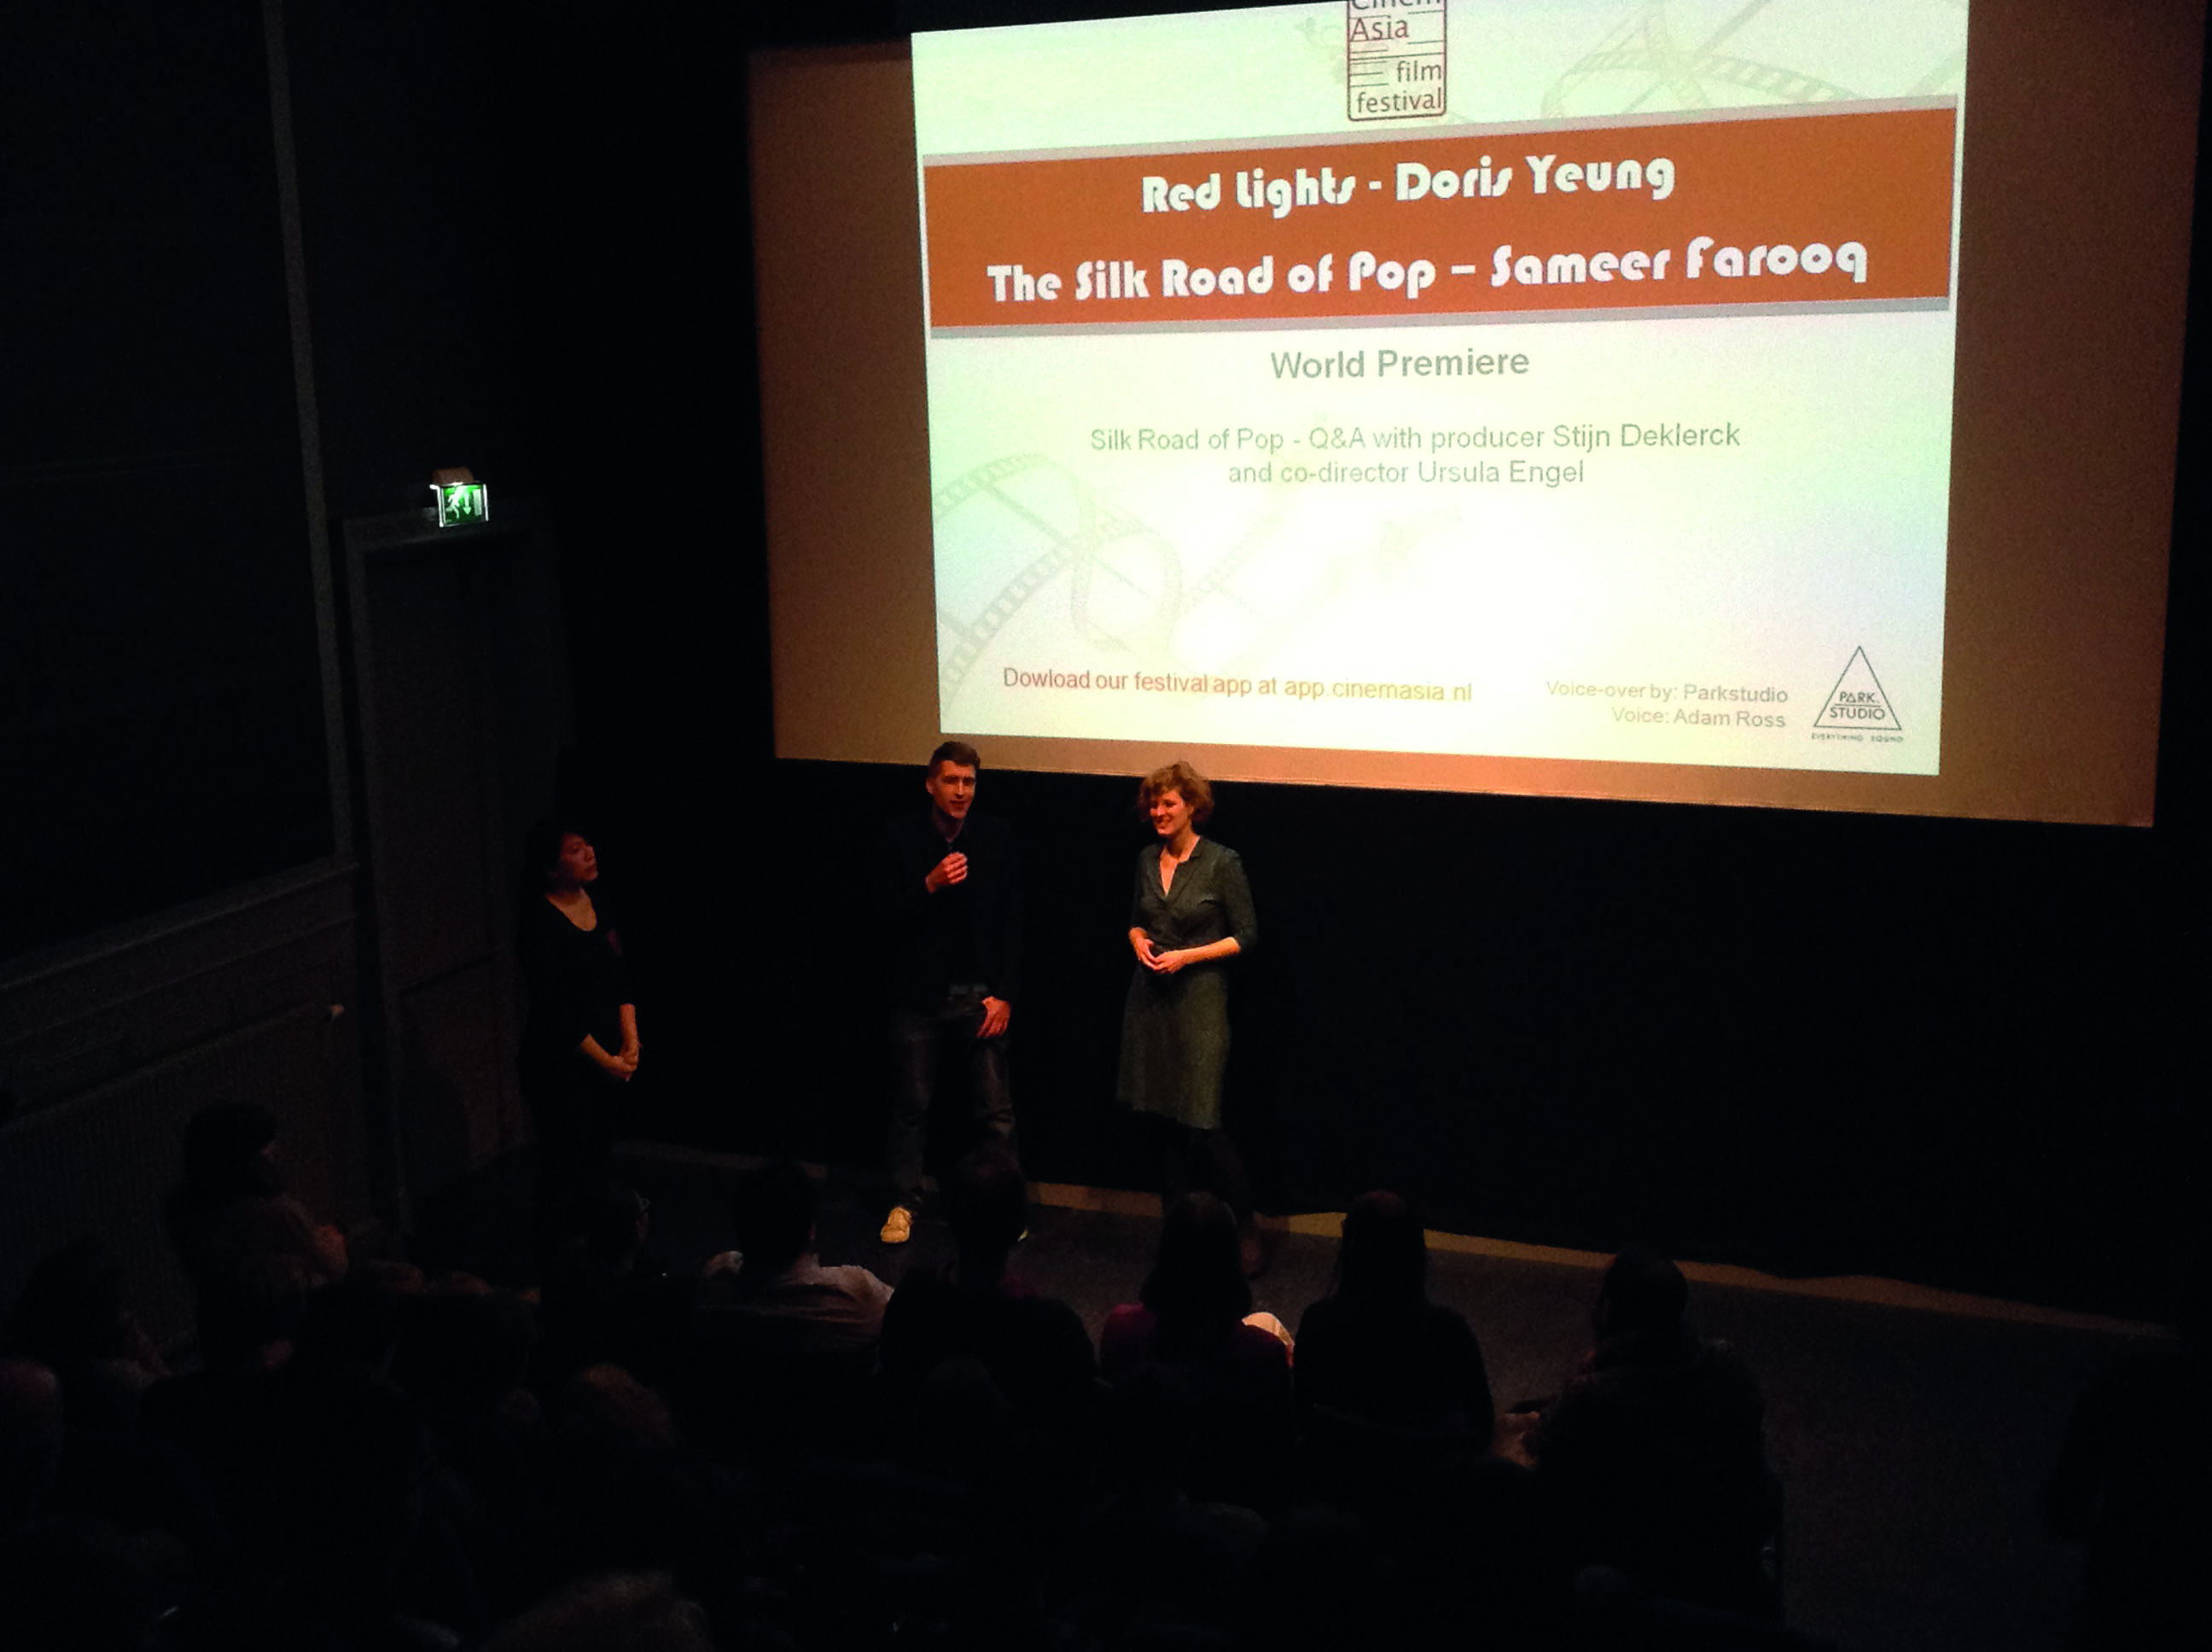 The Silk Road of Pop - Q&A at Cinemasia